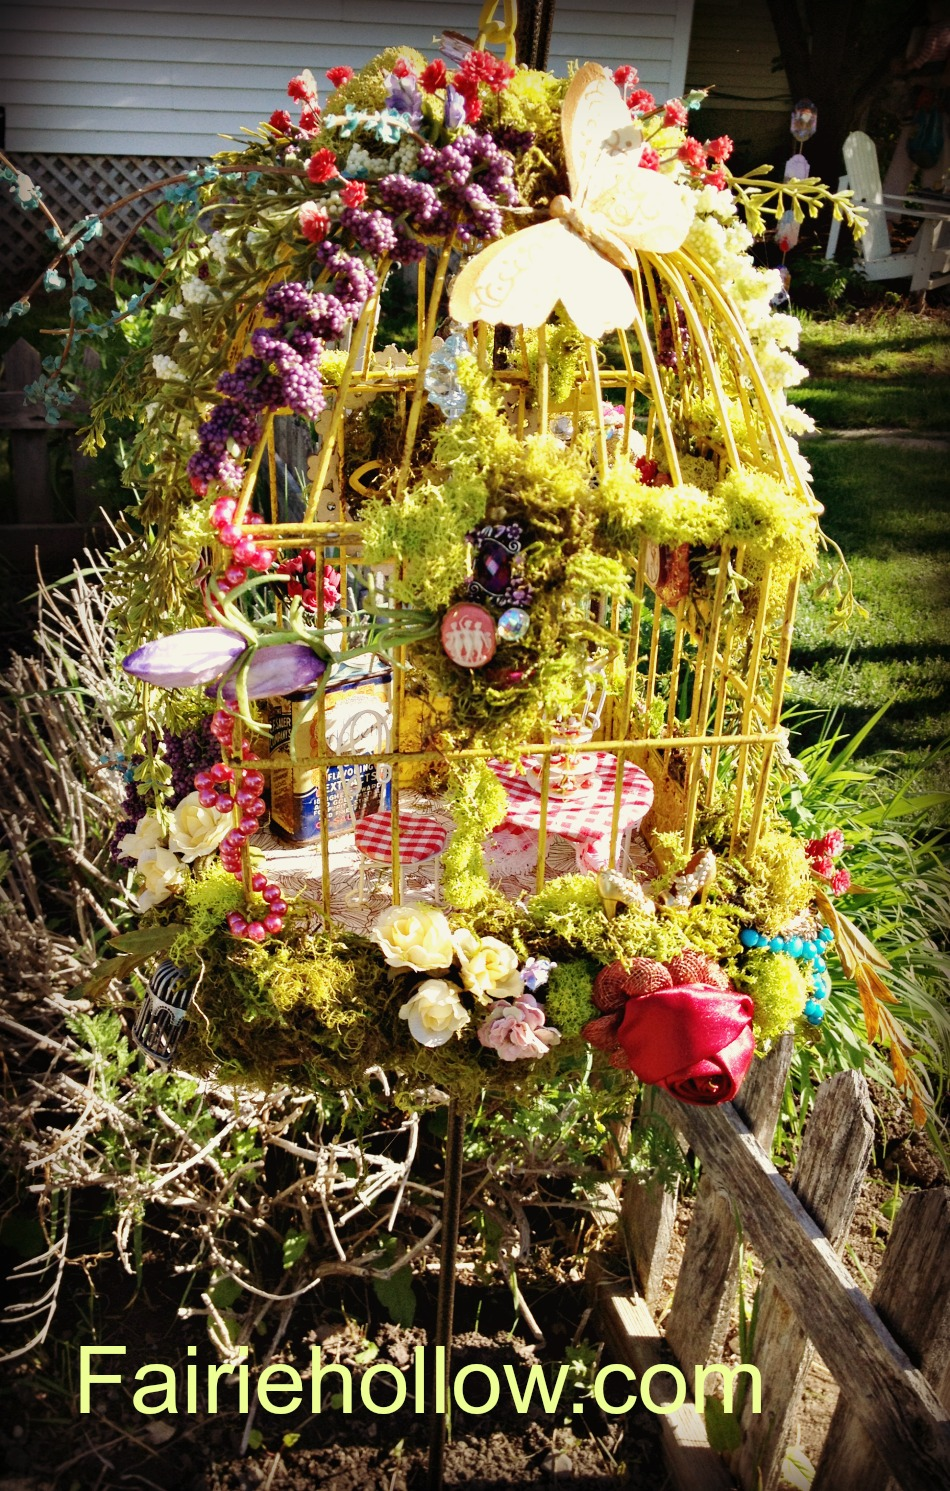 Garden Fairie party house birdcage flowers moss flowers fairy furniture |fairiehollow.com